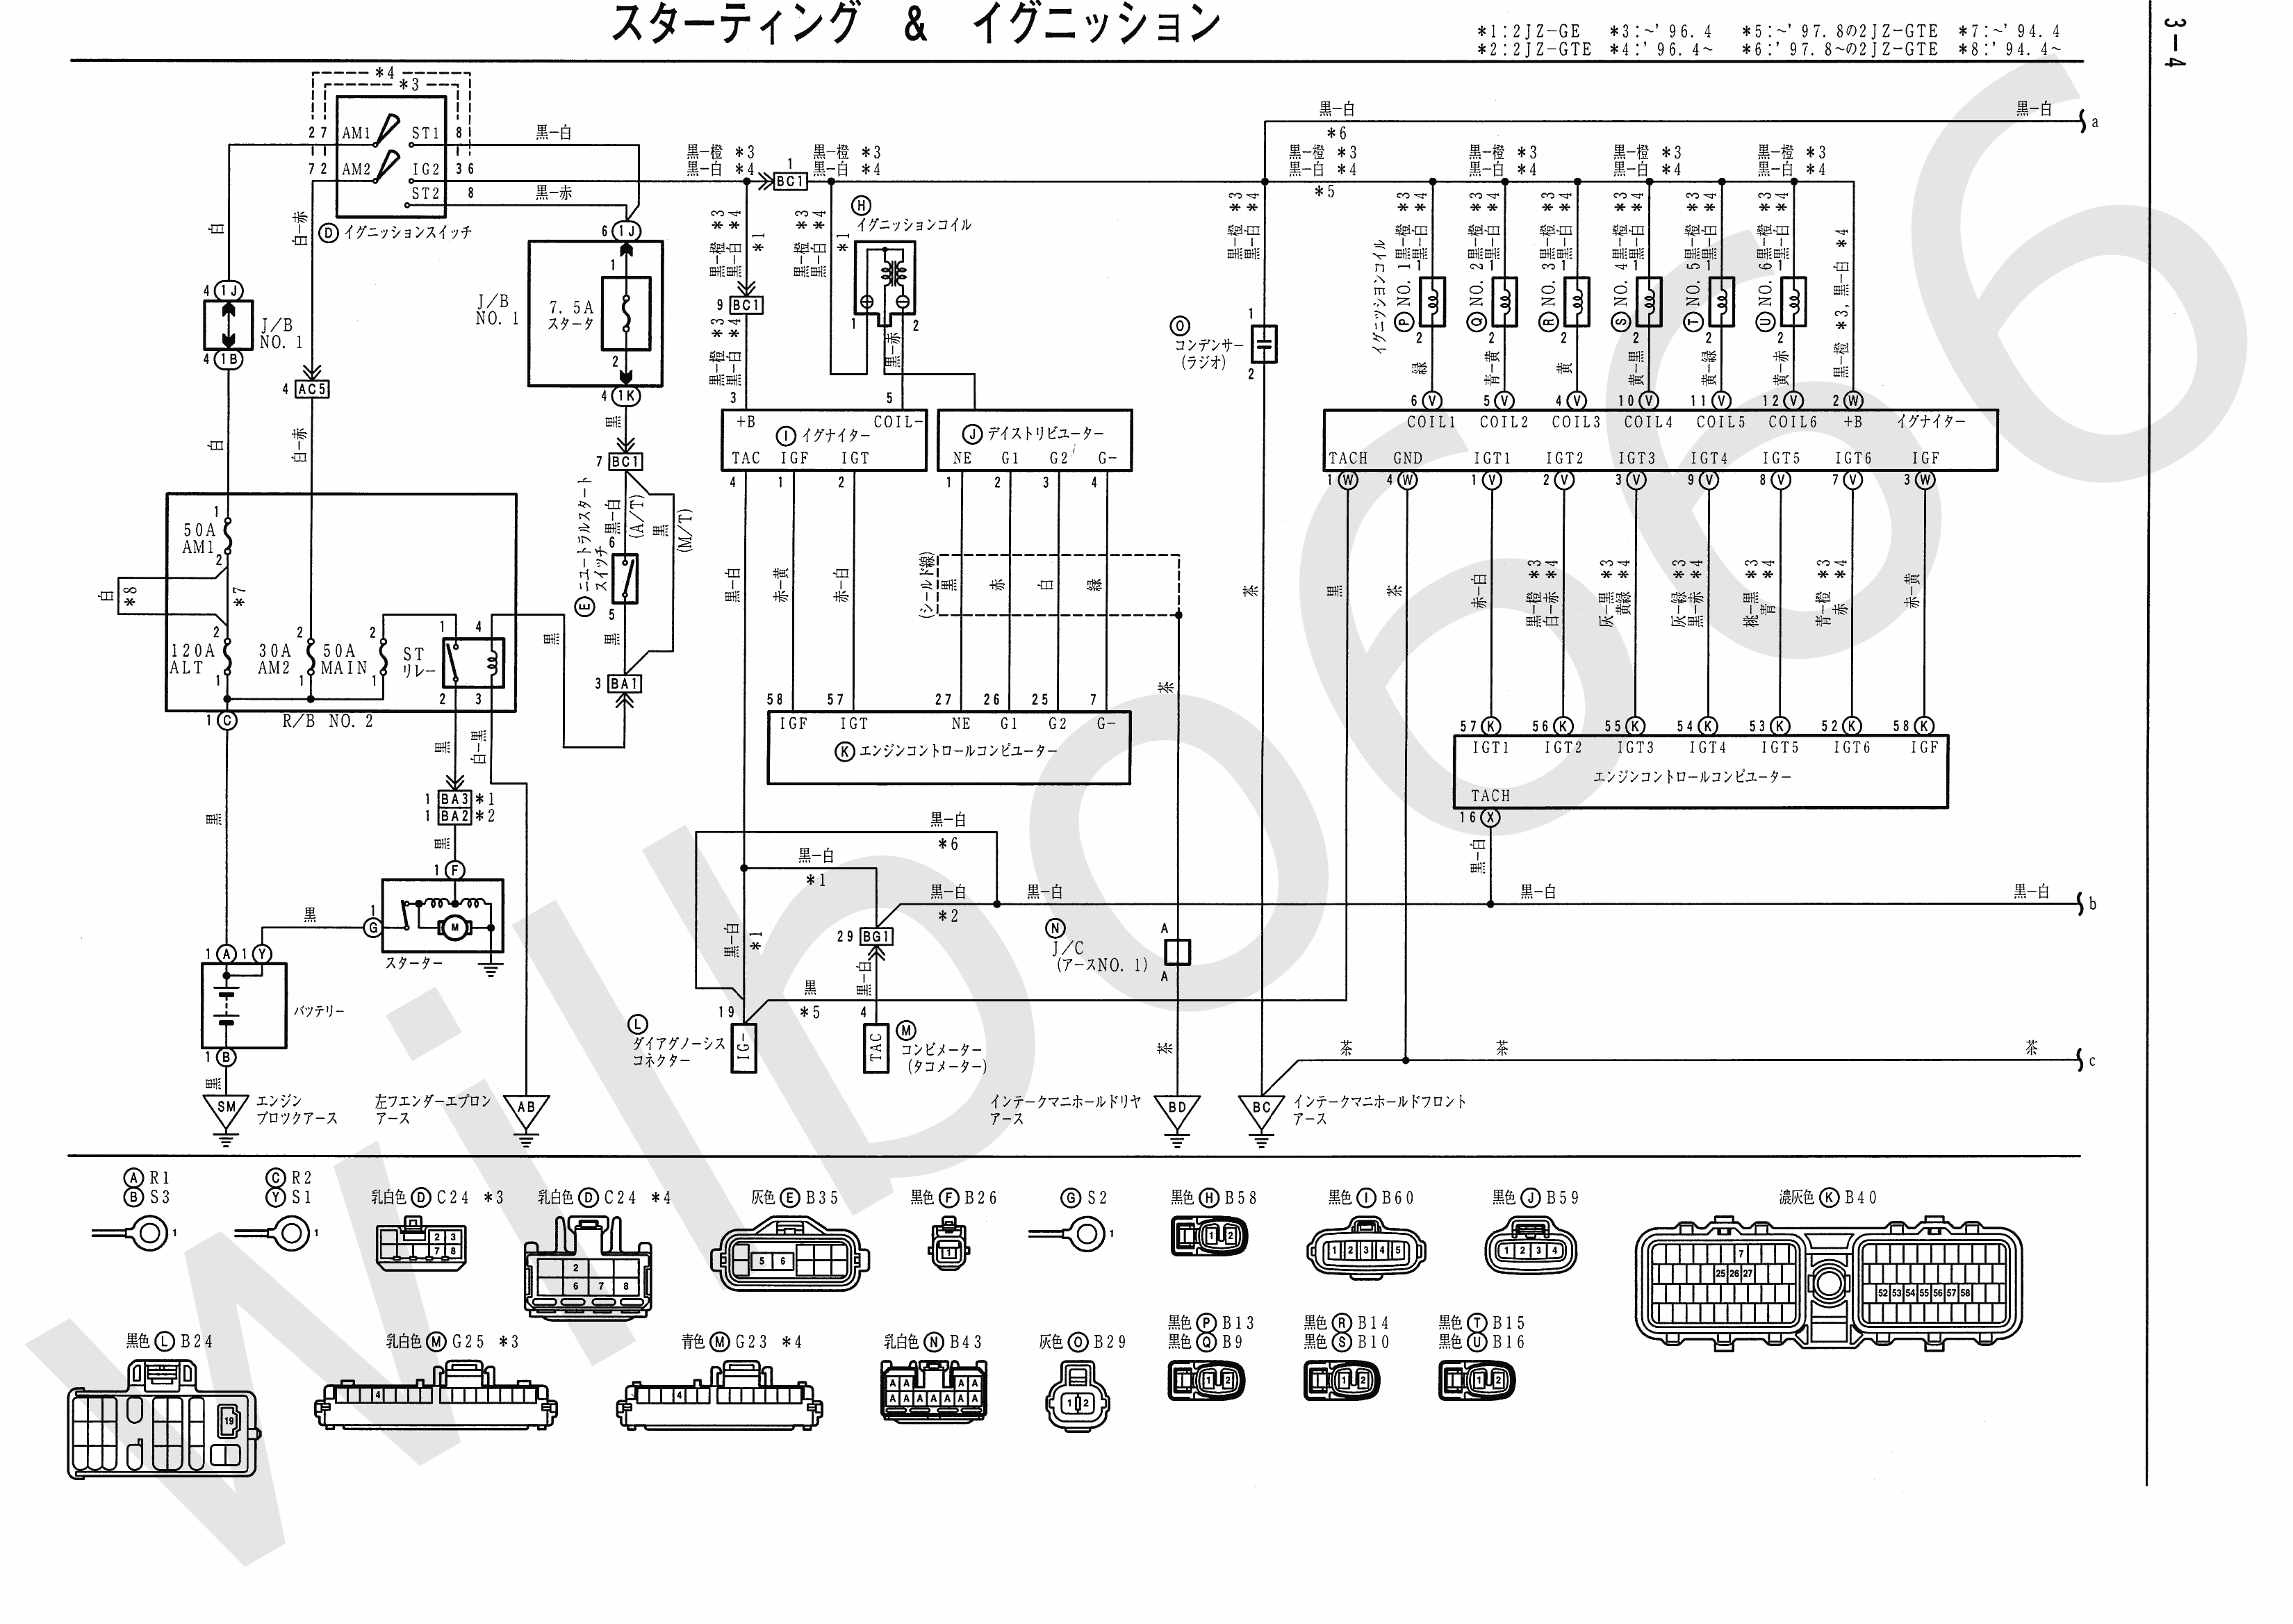 JZA80 Electrical Wiring Diagram 6742505 3 4 wilbo666 2jz ge jza80 supra engine wiring ge wiring schematics at alyssarenee.co